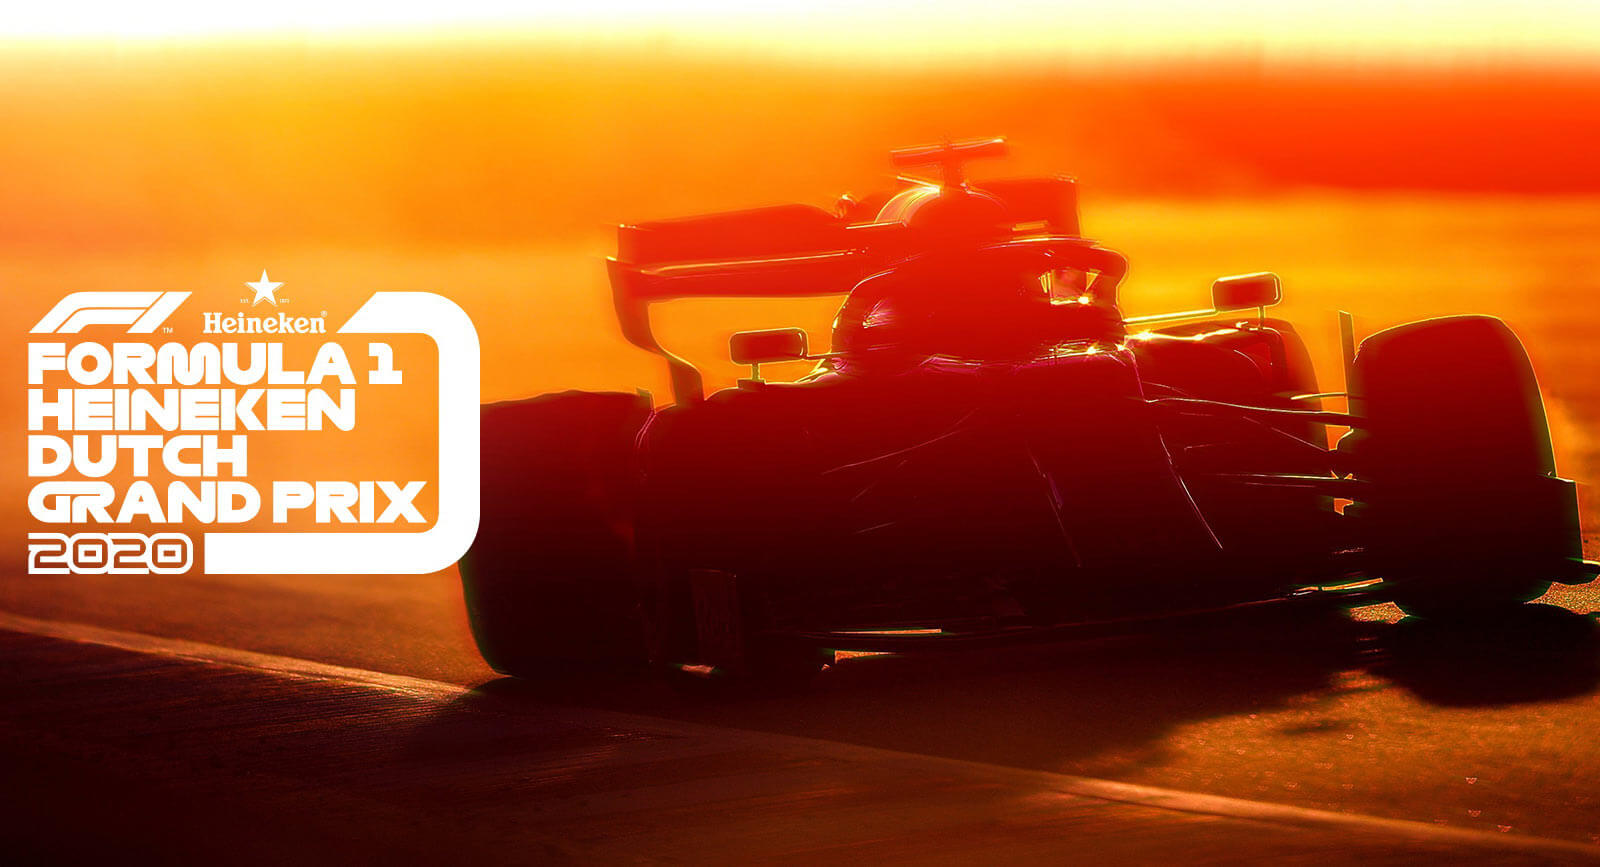 Dutch Grand Prix Returning To F1 Calendar In 2020 Carscoops